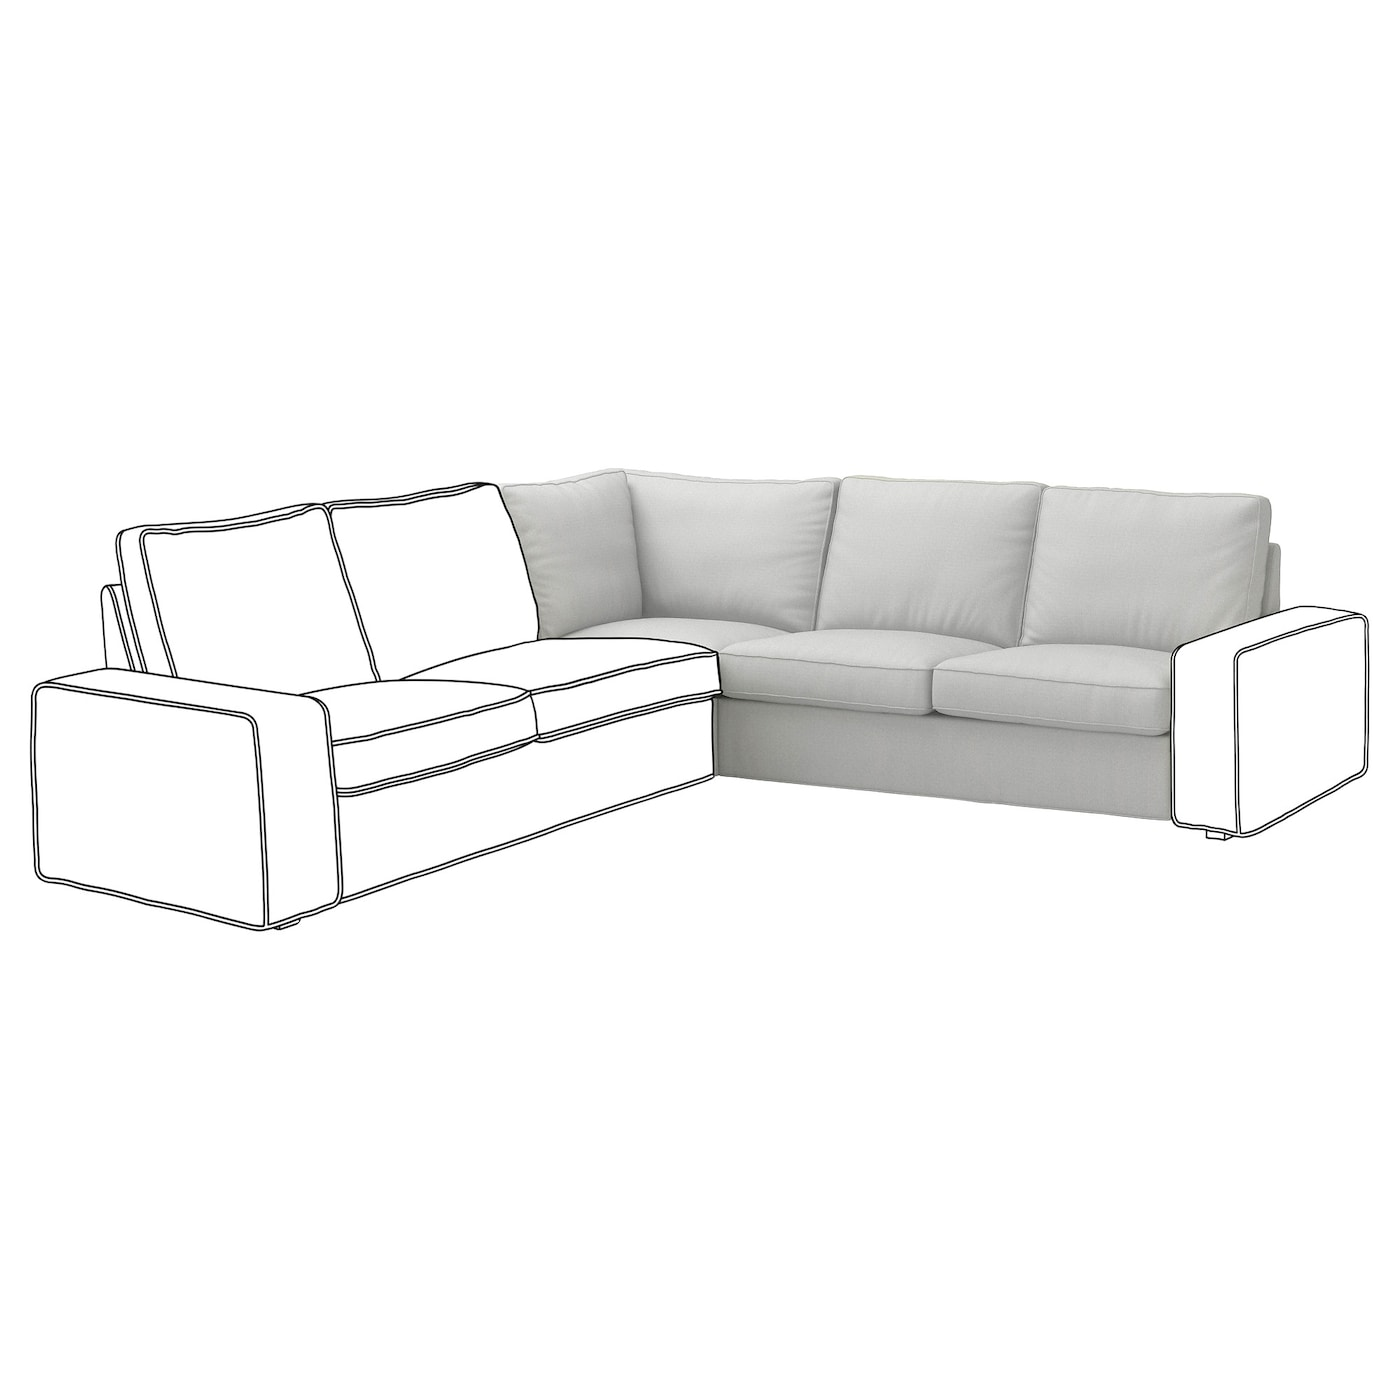 Ikea kivik corner sofa ikea kivik corner sofa with chaise - Kivik corner section ...